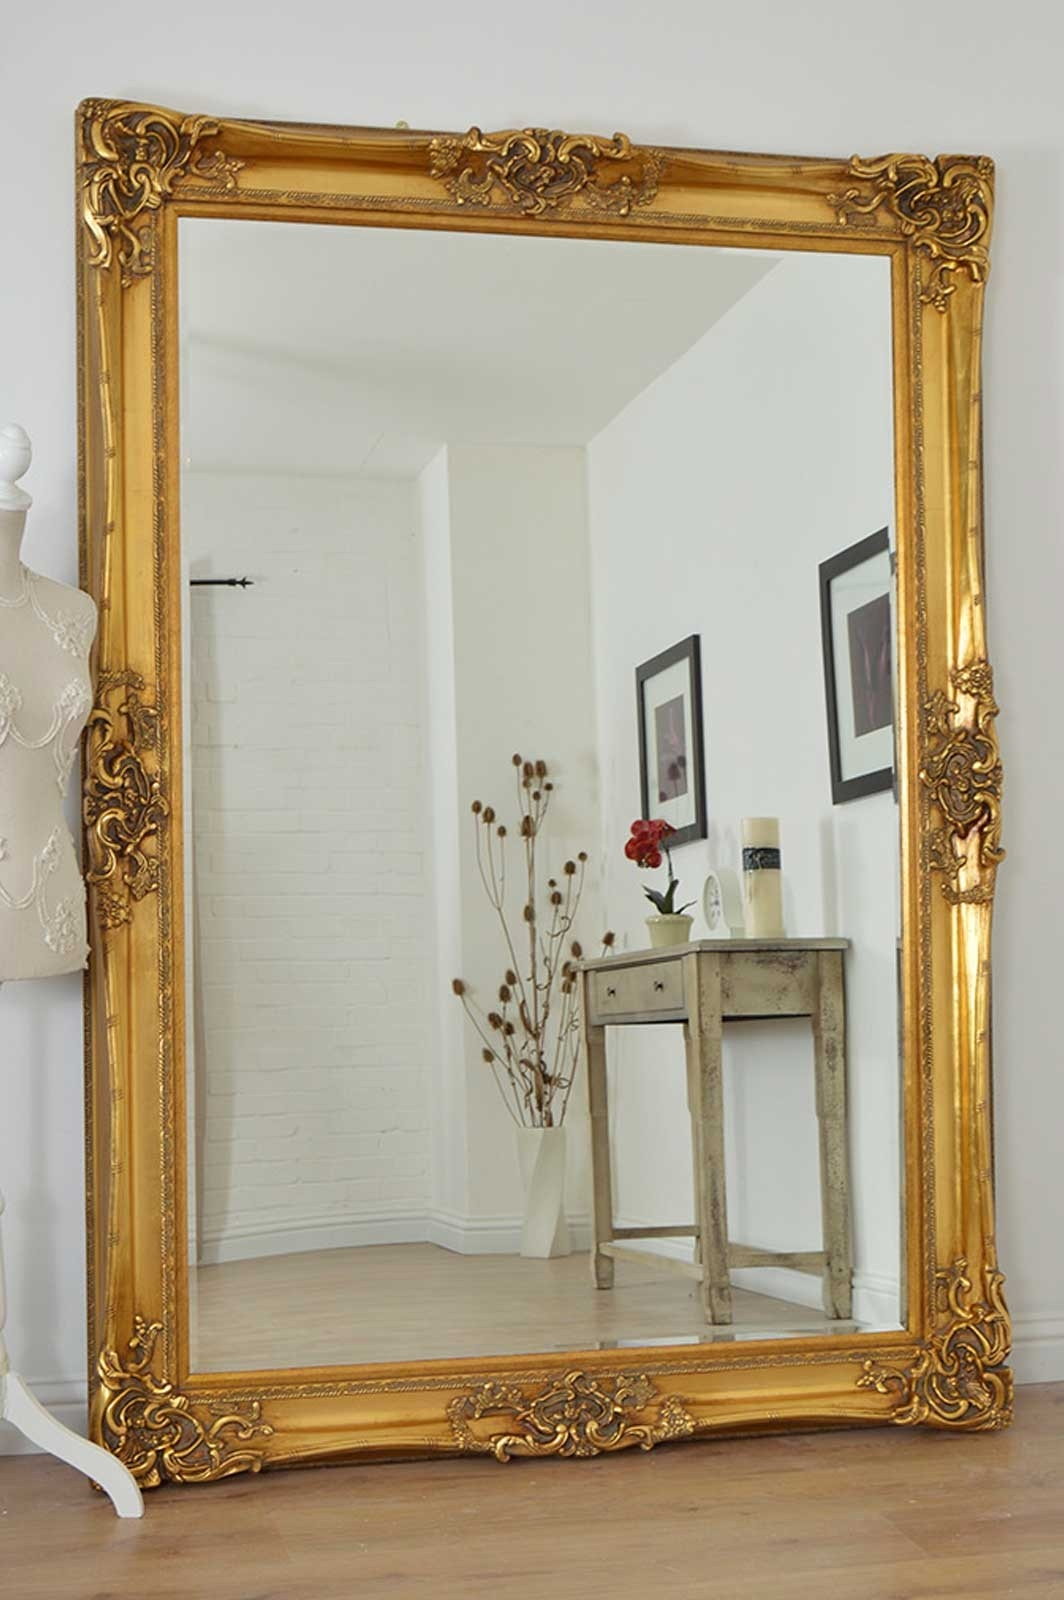 Large Gold Very Ornate Antique Design Wall Mirror 7ft X 5ft 213cm Intended For Antiqued Mirrors For Sale (Image 13 of 15)